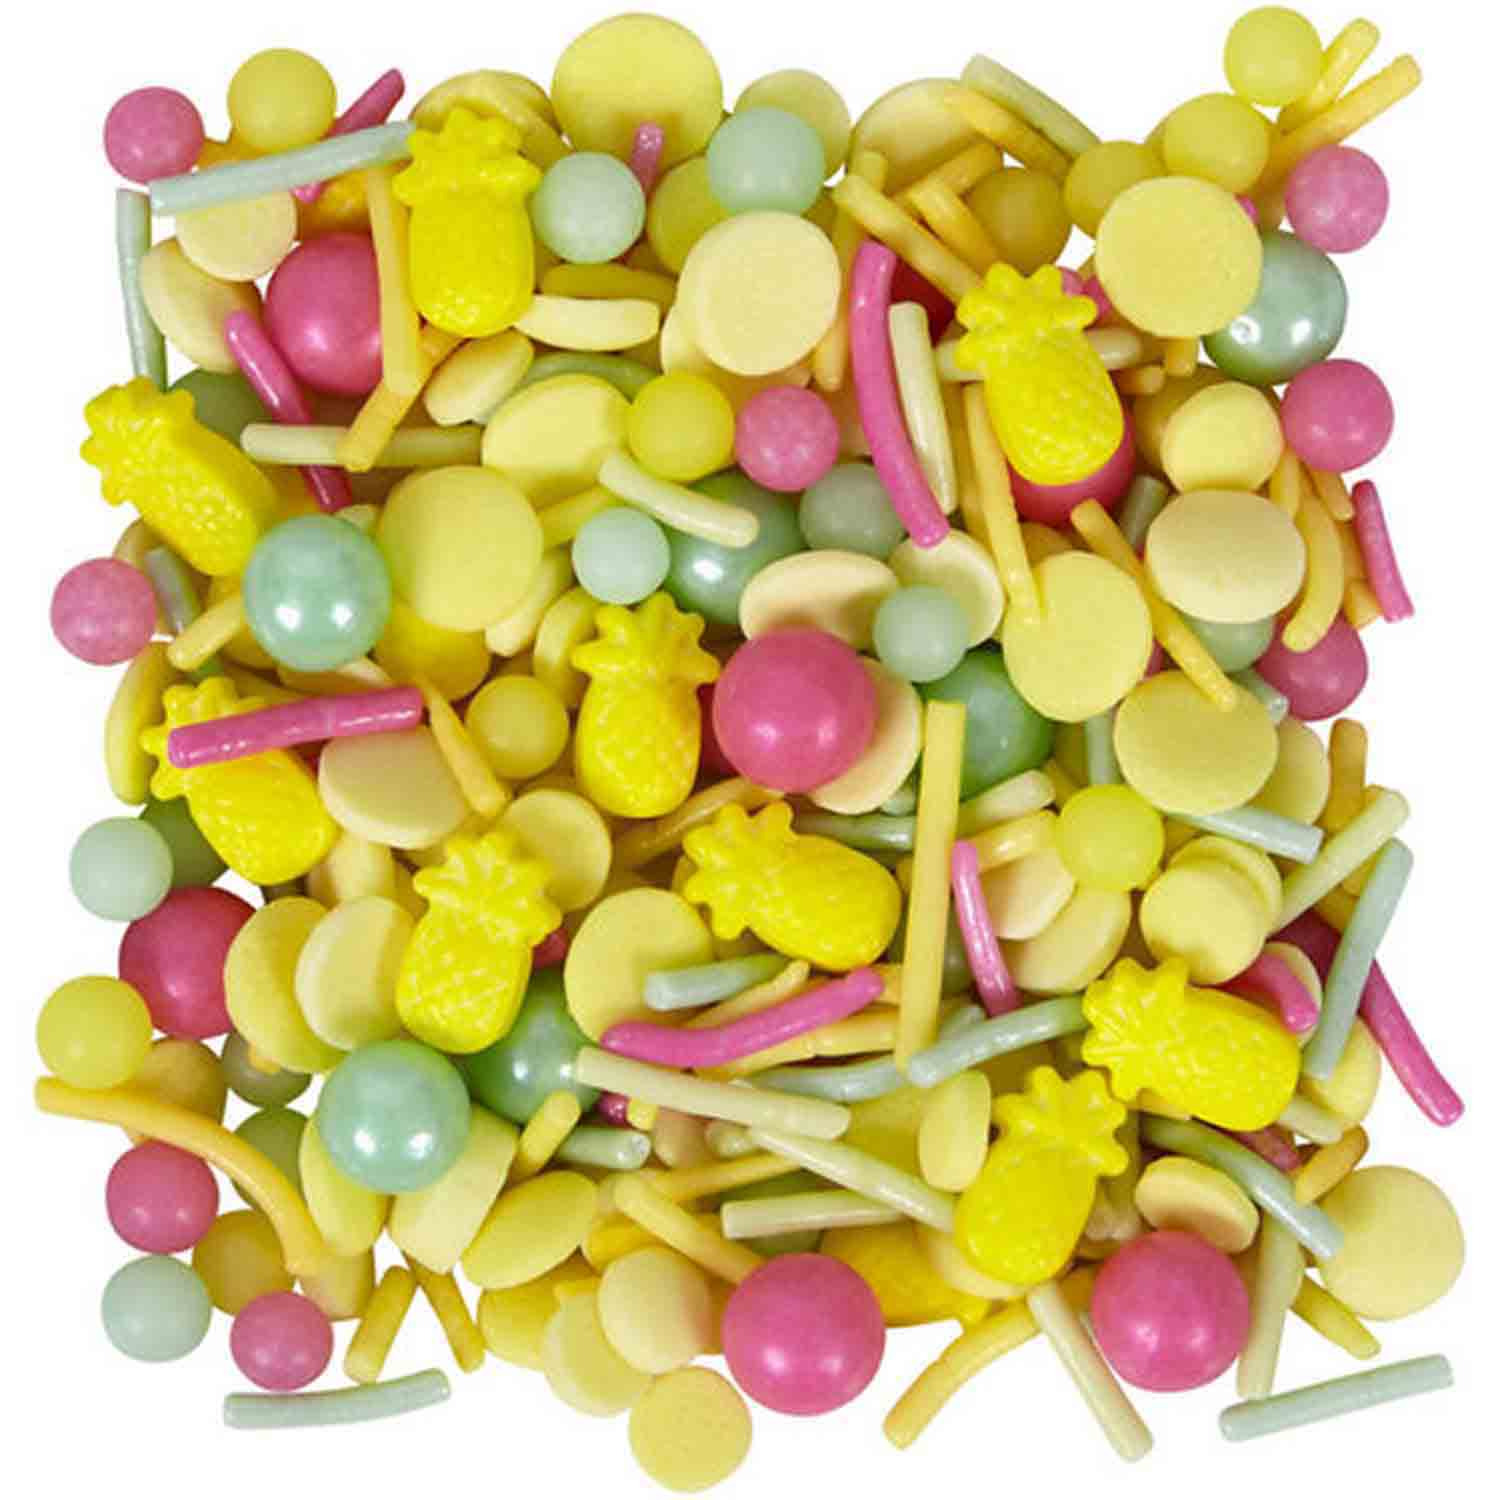 Tropical Pineapple Sprinkle Mix